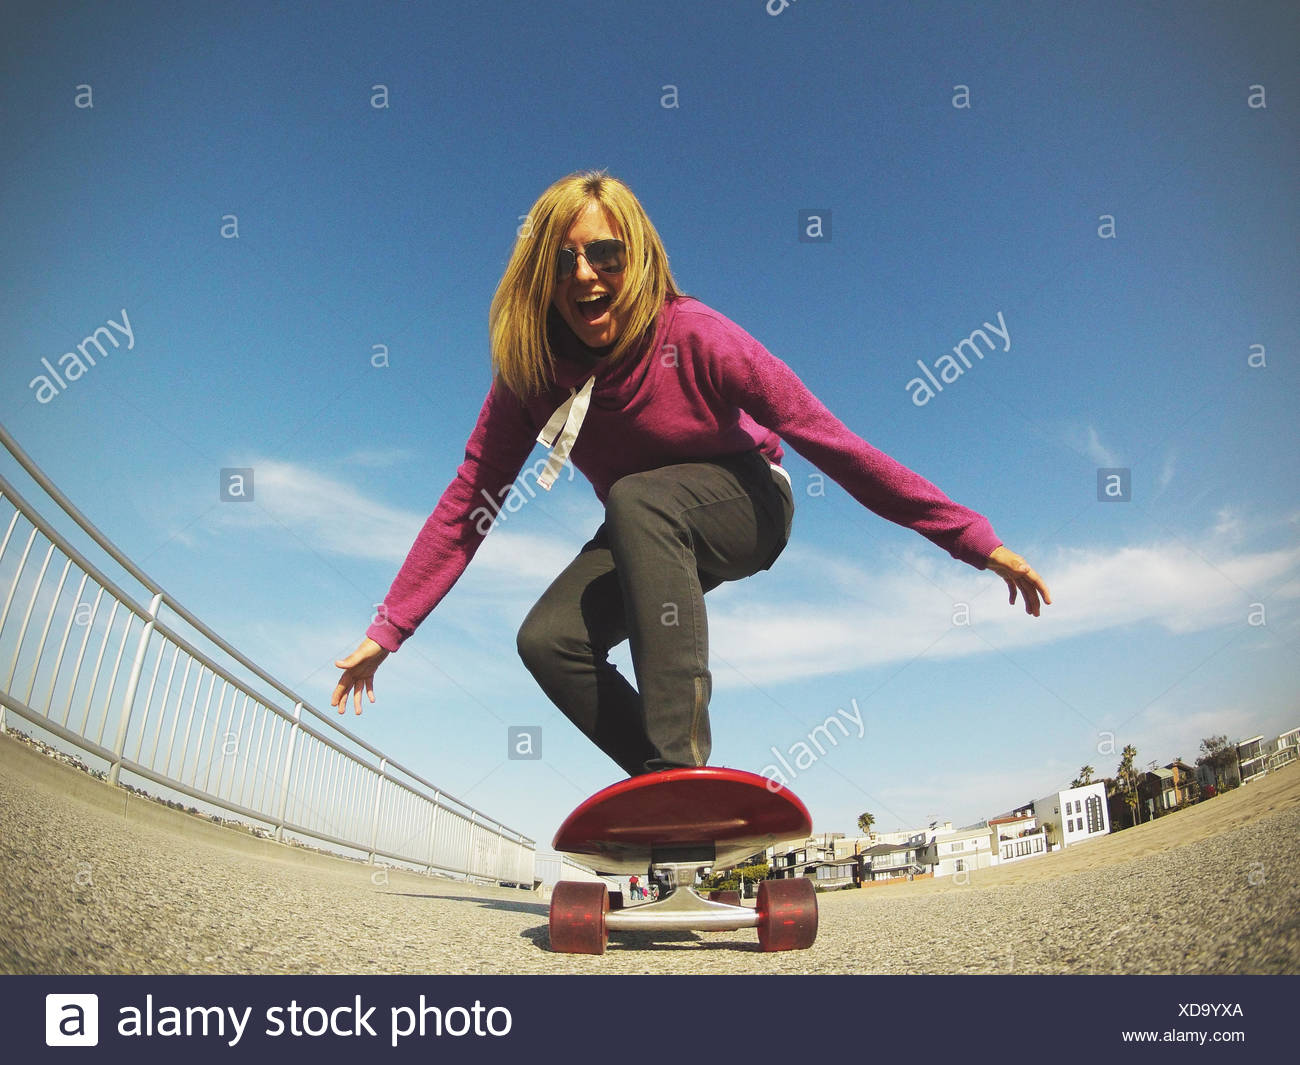 Young woman skateboarding, Los Angeles, California, America, USA - Stock Image